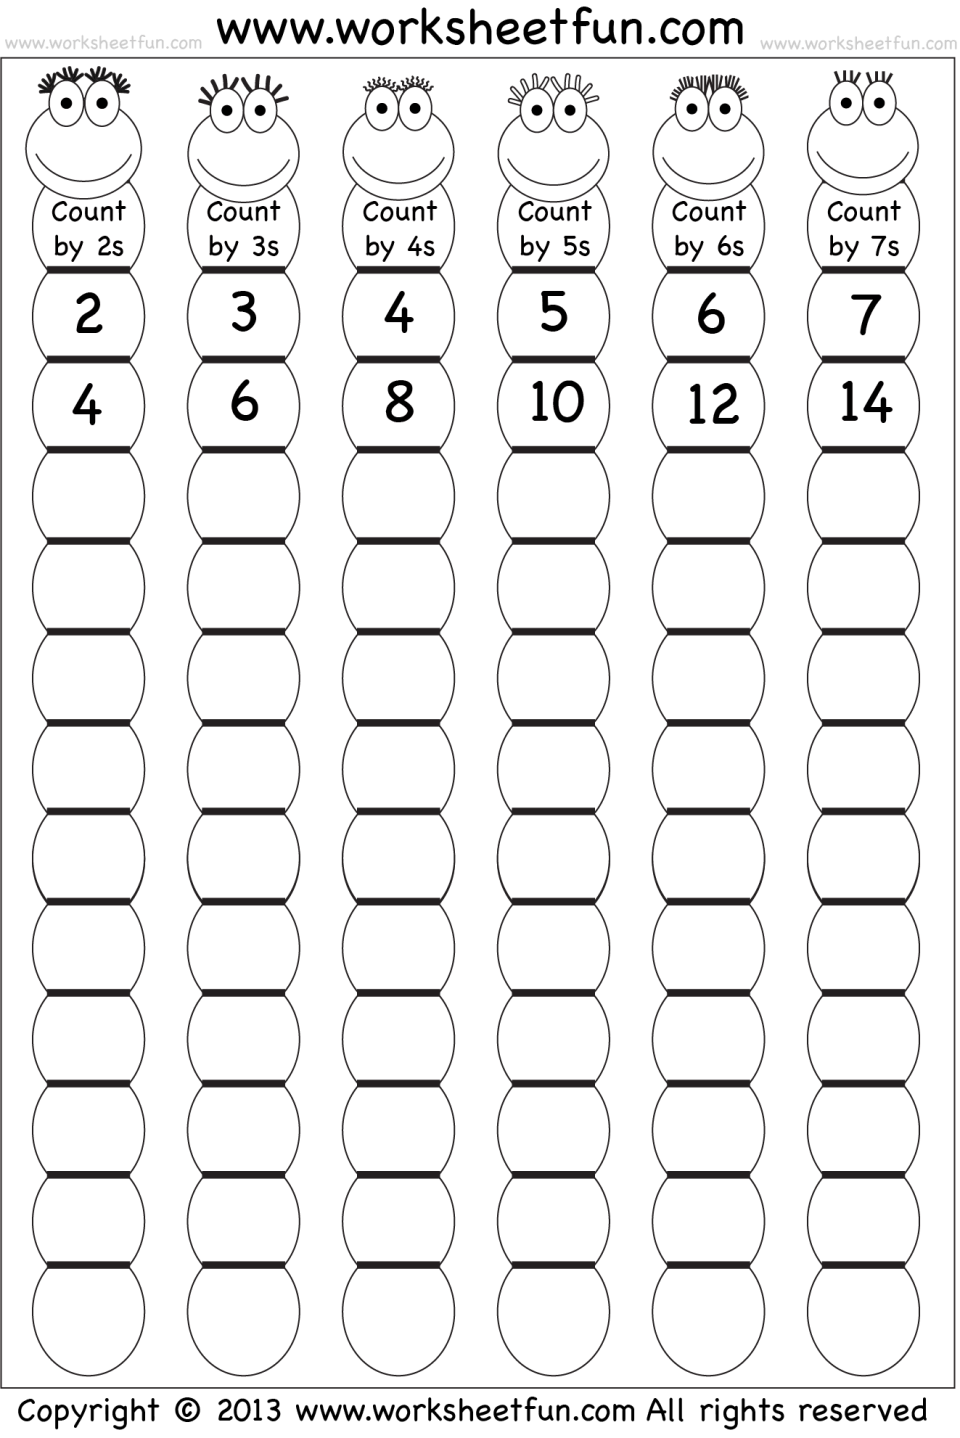 Image Result For Worksheet Of Reverse Counting